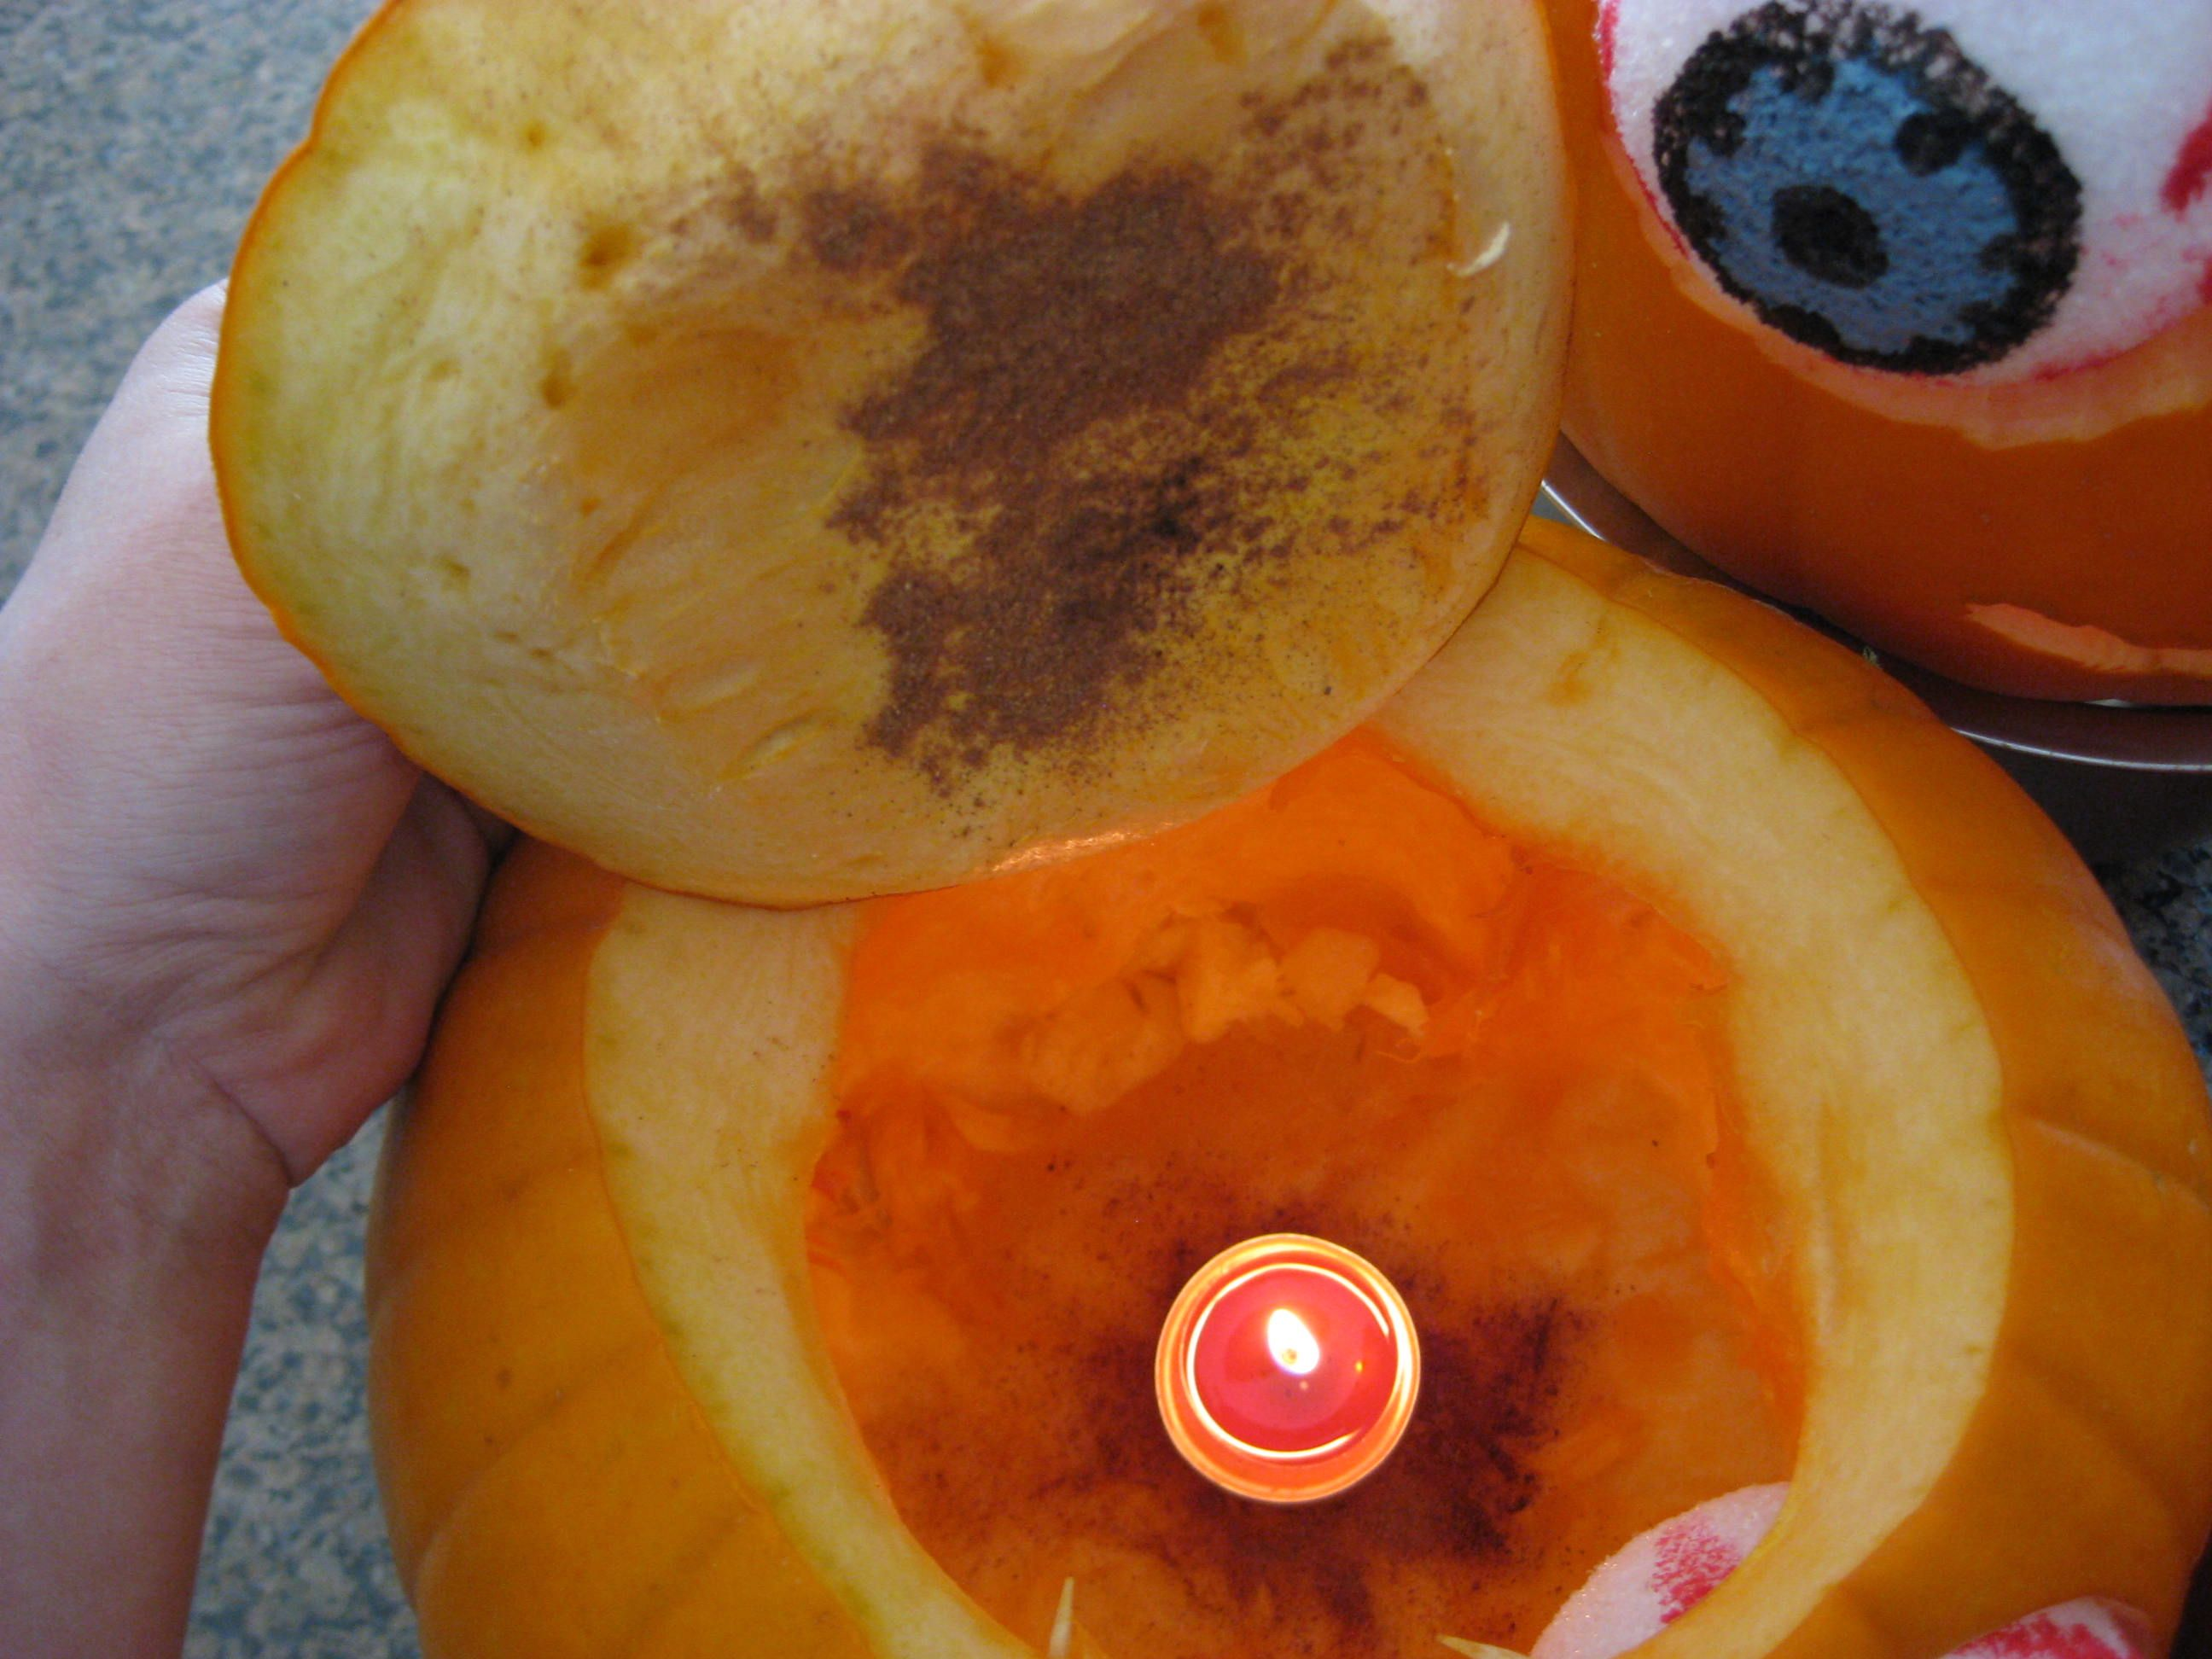 Add Pumpkin Spice In your Pumpkin, it gives off a lovely fall scent when lit! Genius!